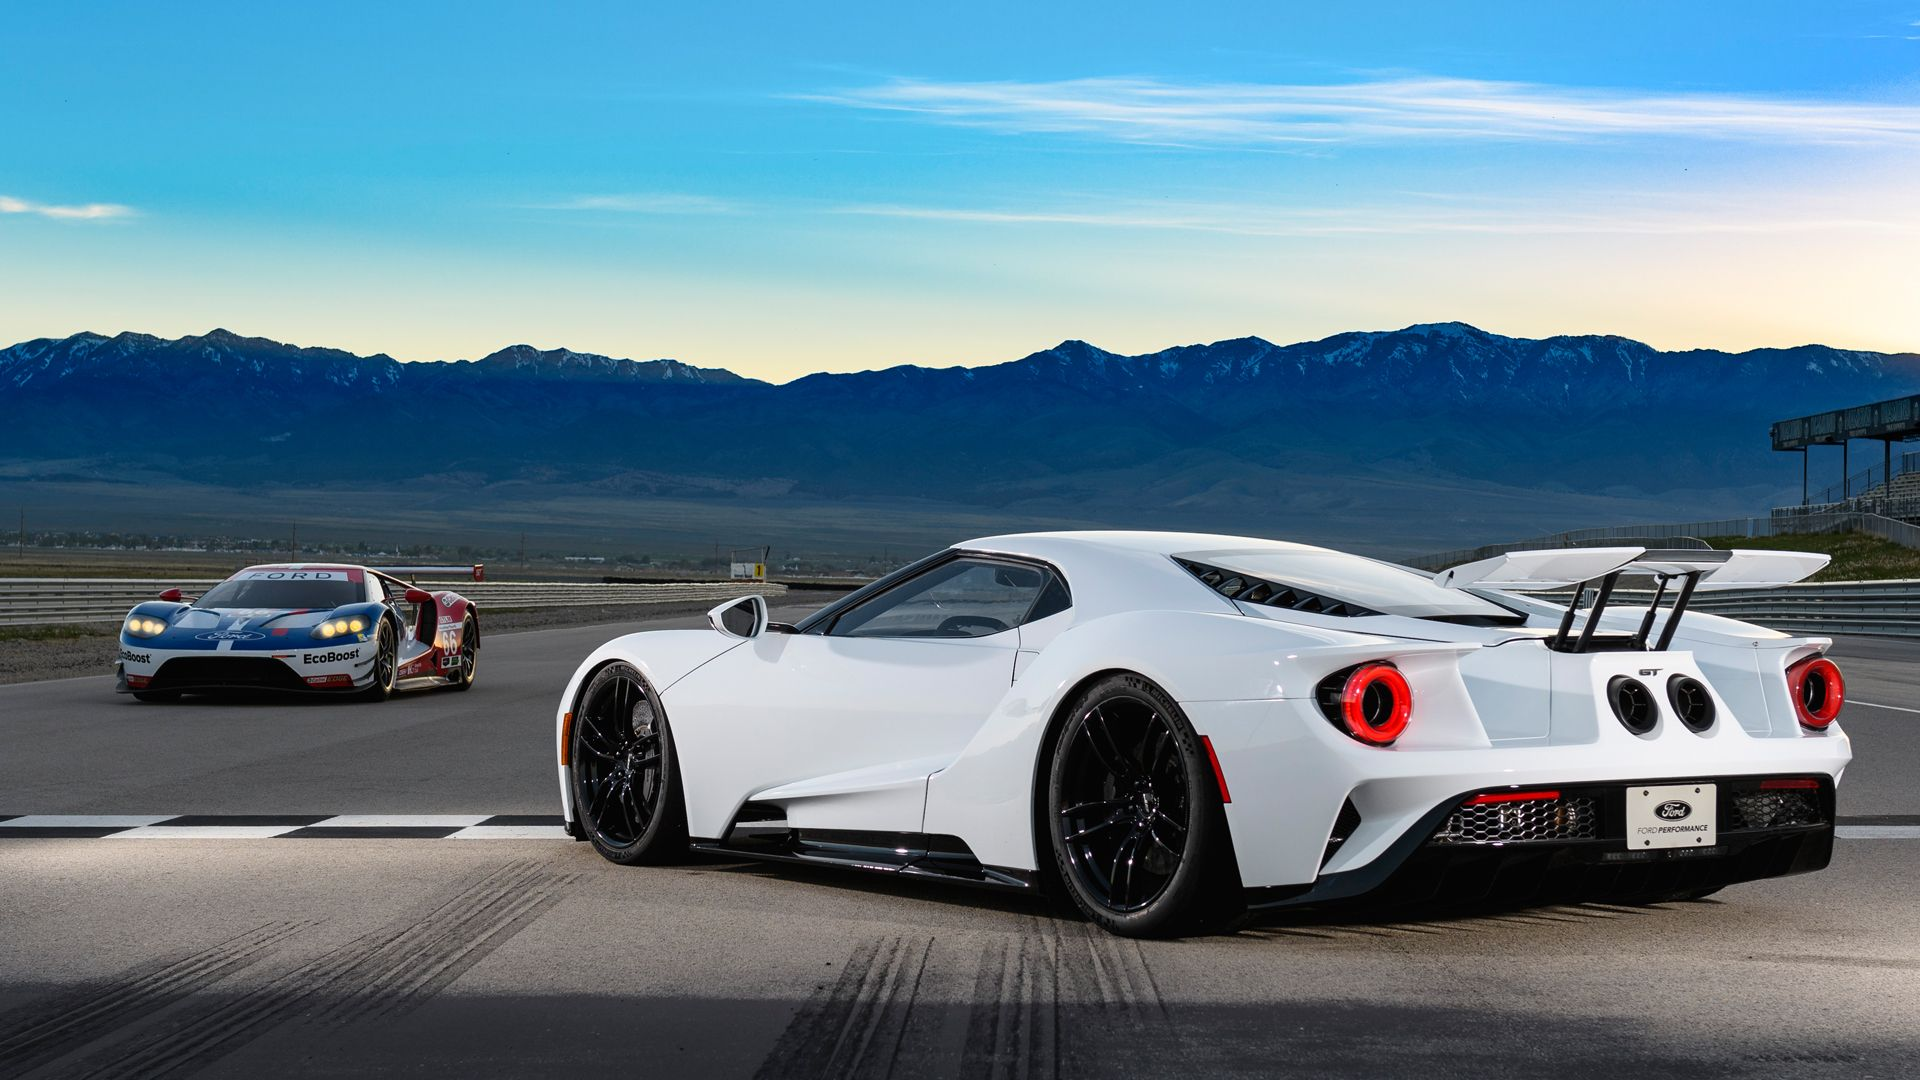 PC Wallpapers/ Backgrounds Ford GT Super Car Le Mans